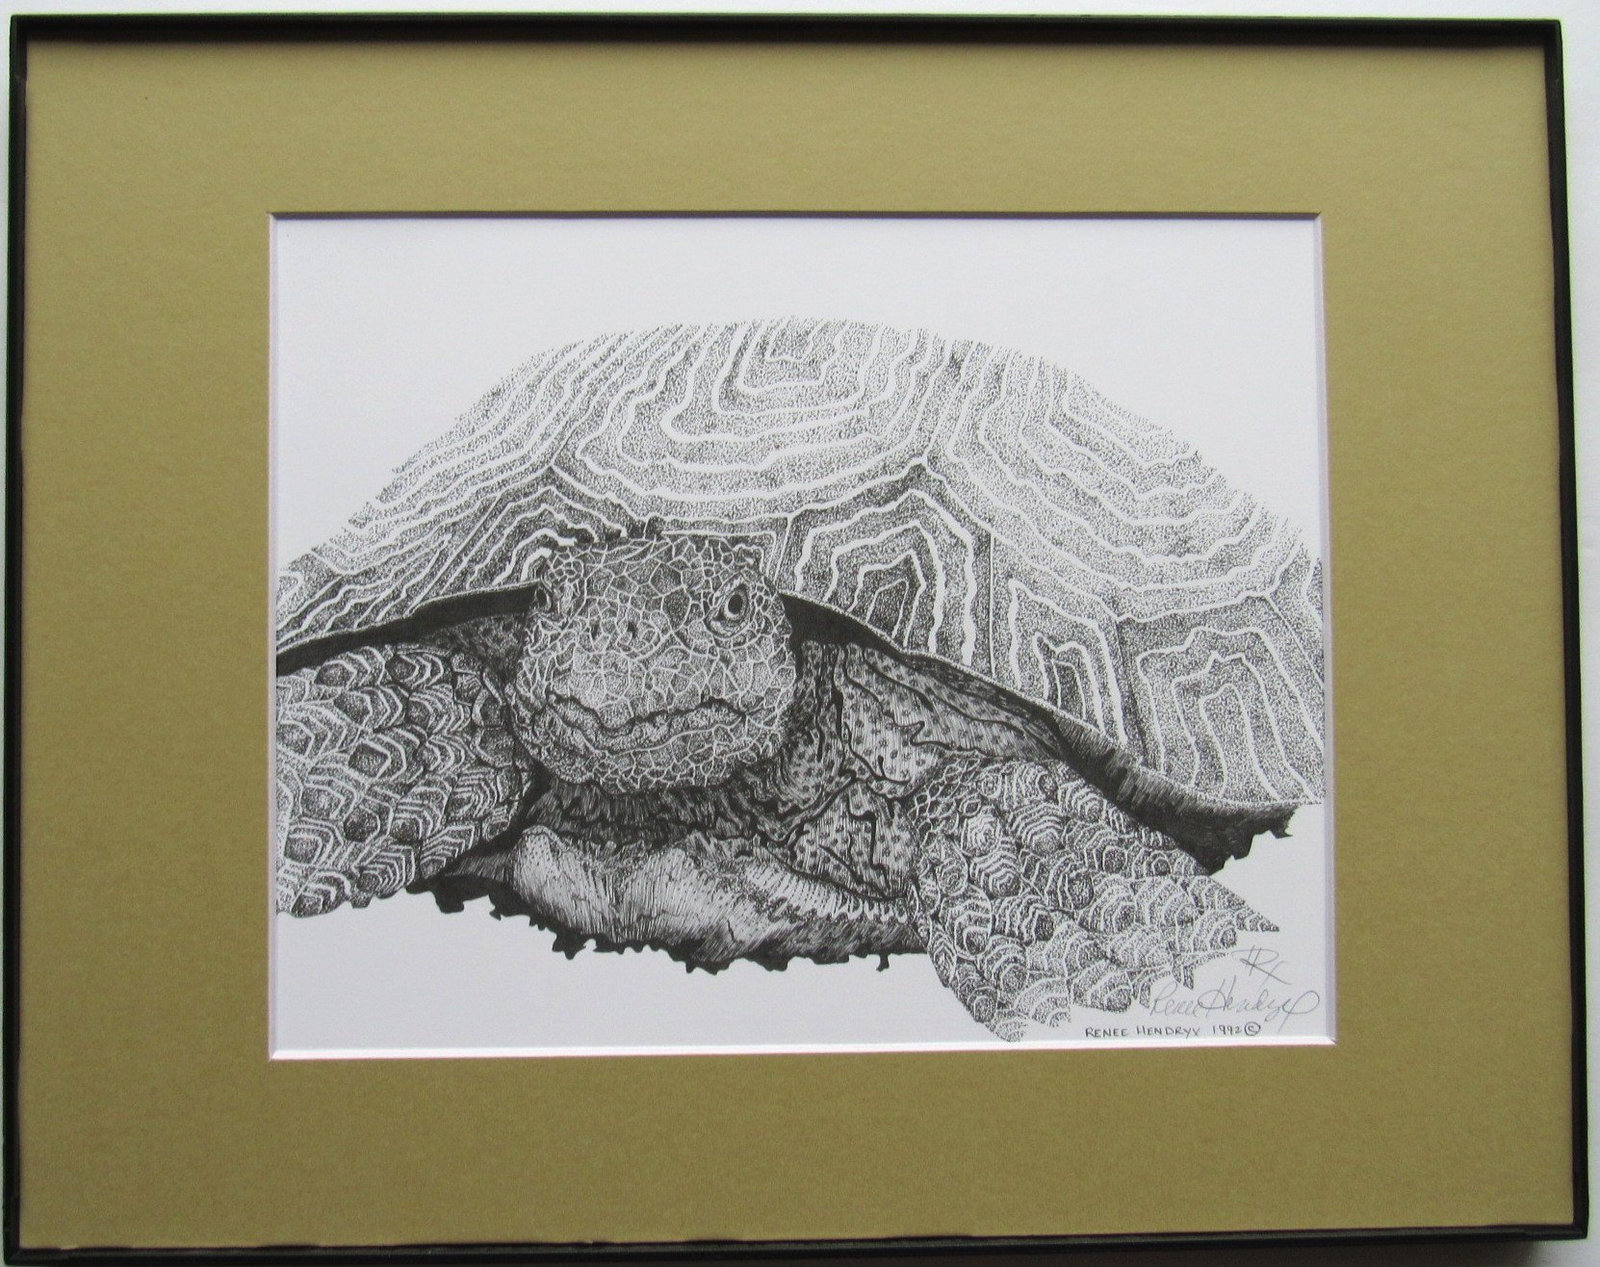 Desert Tortoise, Turtle, Framed Wildlife Art Print, Pen and Ink, Animal Art Prin